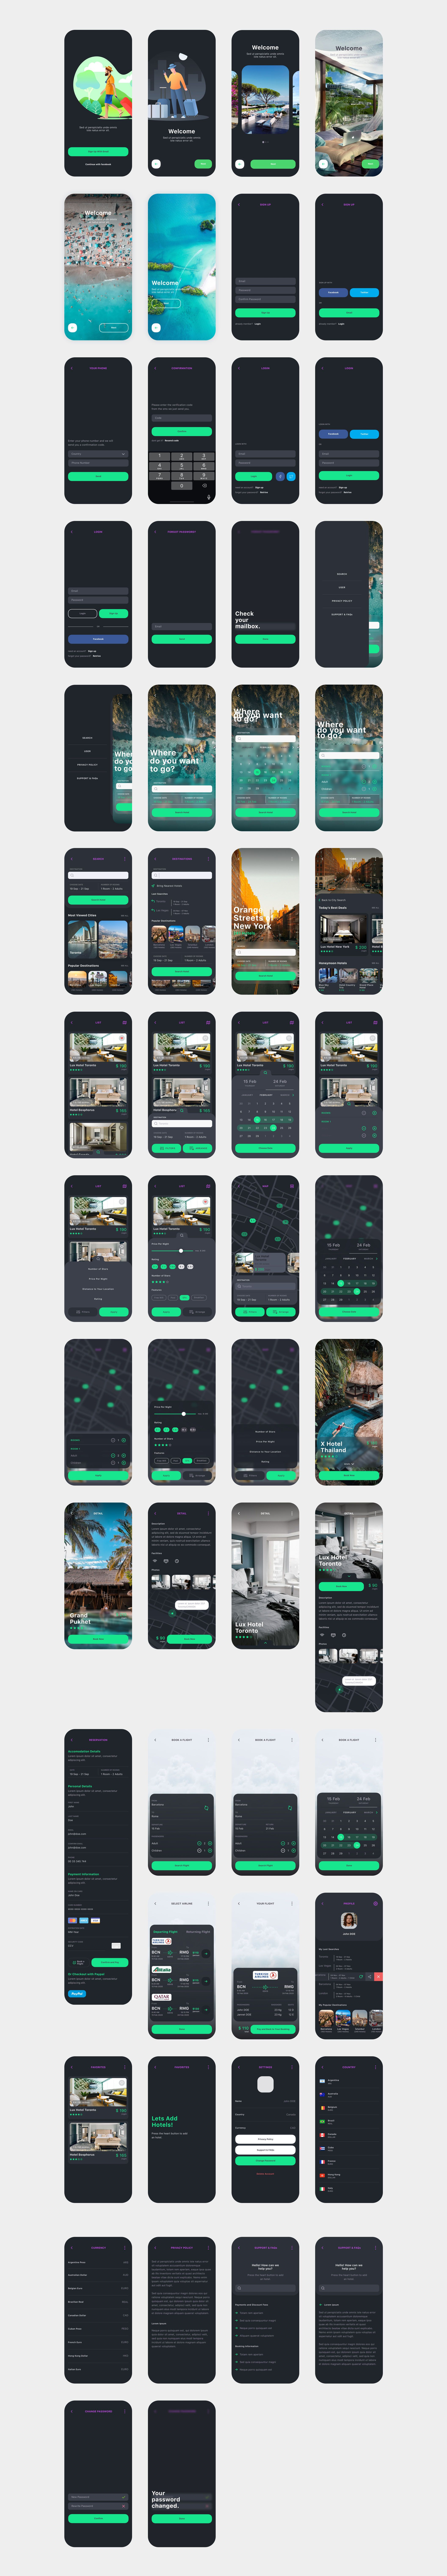 Vesta Dark is a Travel Booking App UI Kit with hotel and flight booking screens. Sketch & Adobe XD & Figma files included. Each screen is fully customizable and well organized in symbols. It contains 57 screens.